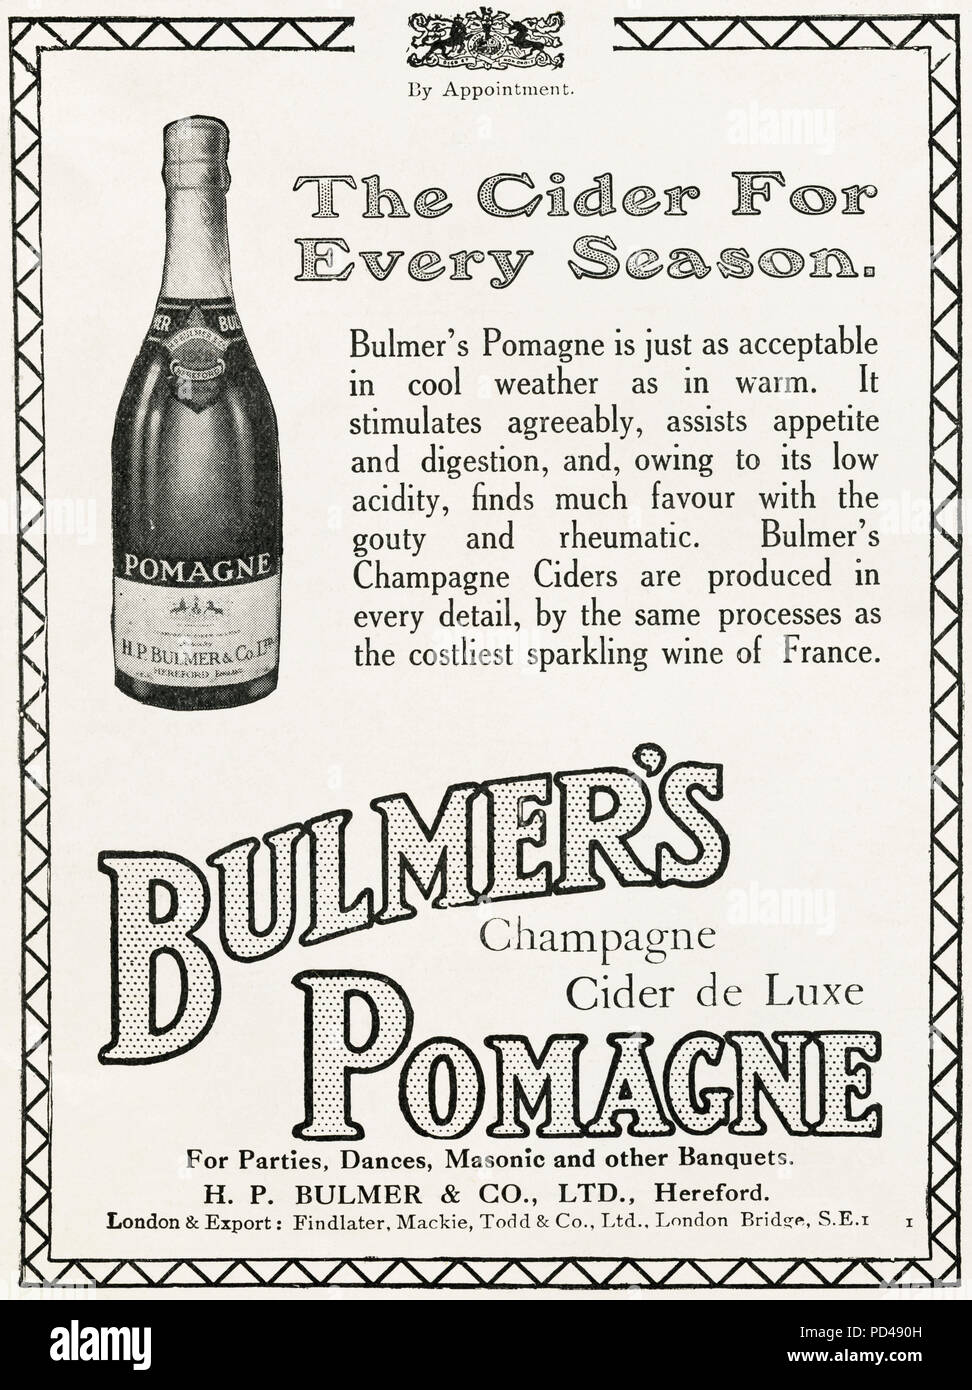 1920s old vintage original advert advertising Bulmer's Pomagne Champagne Cider by Royal Appointment in English magazine circa 1924 Stock Photo